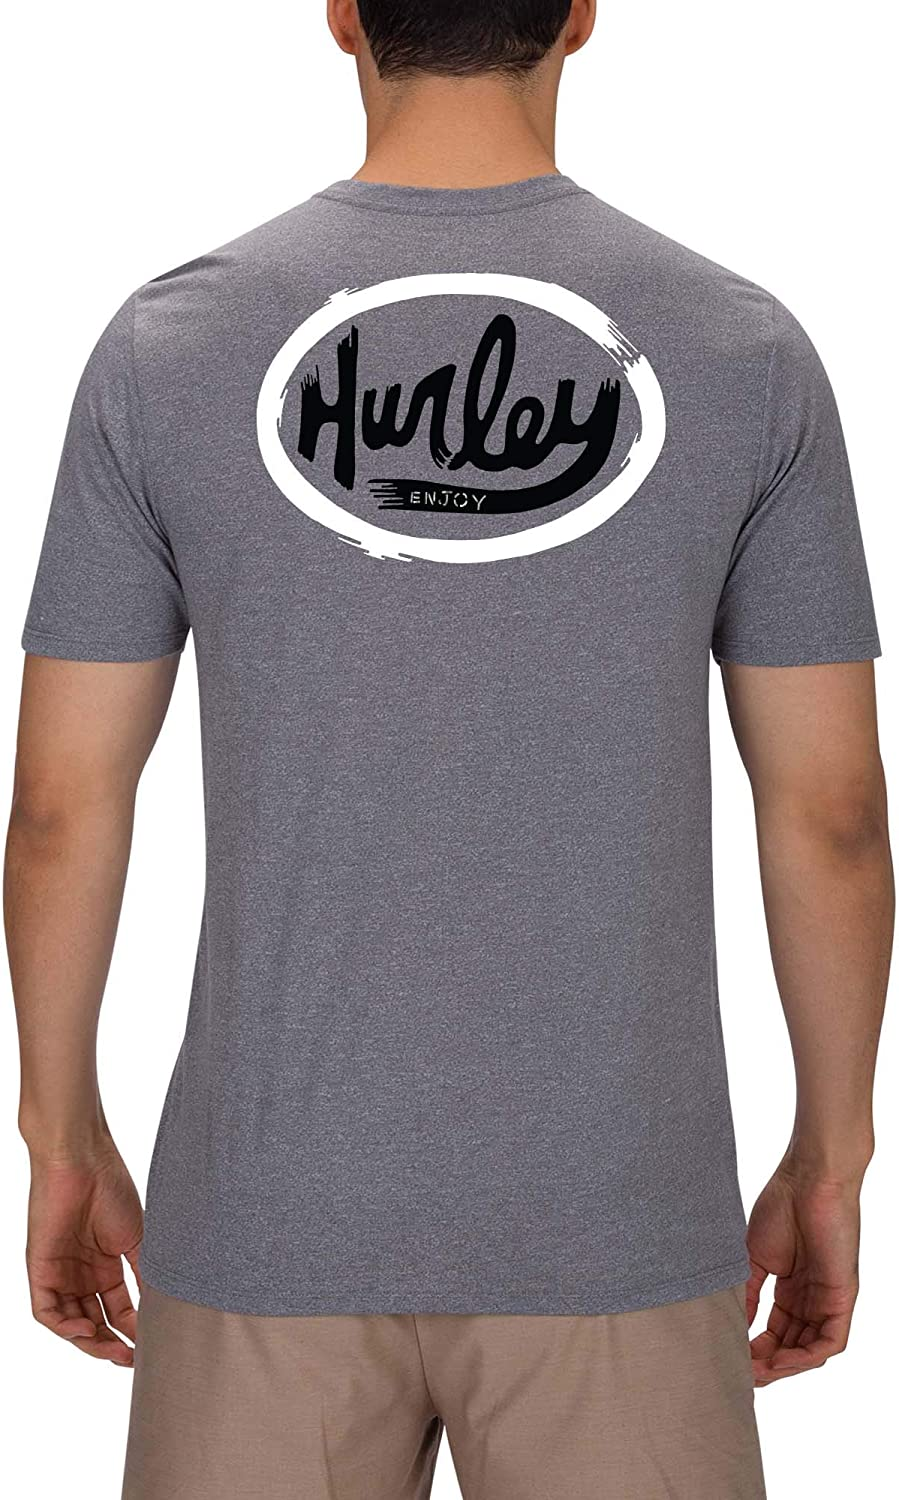 Hurley Mens Short Sleeve Ovals Tri-Blend Tshirt